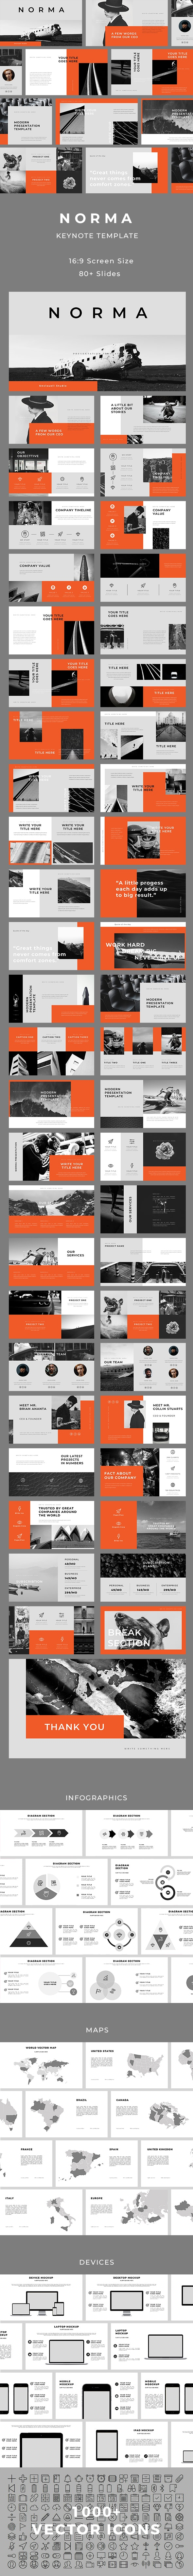 Norma Keynote Template - Creative Keynote Templates